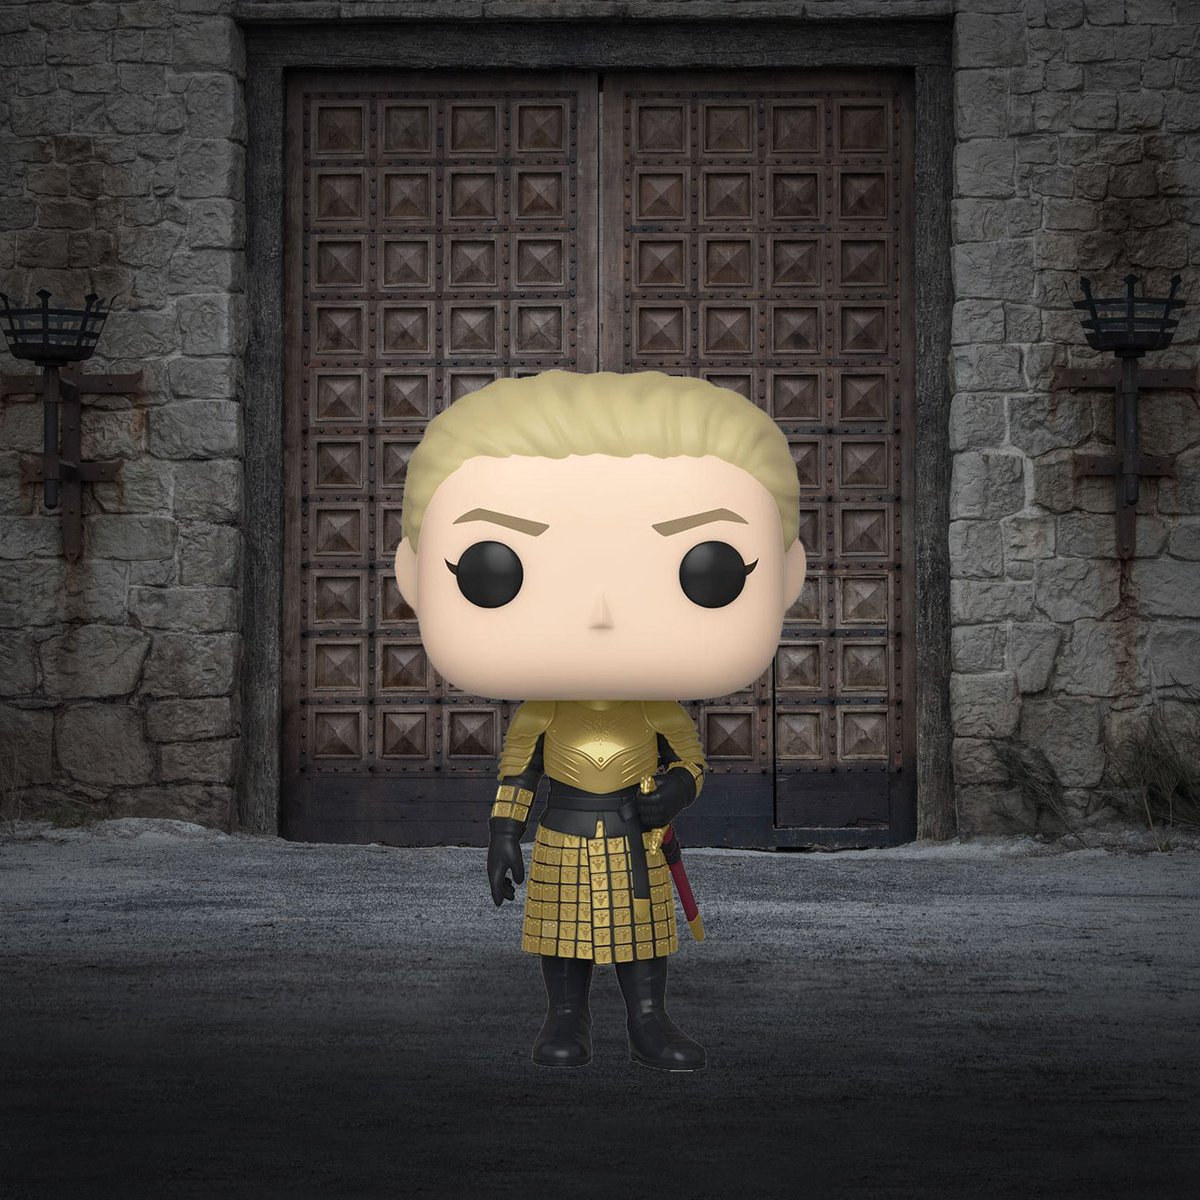 A Knight of the Seven Kingdoms. Take what is yours with the Ser Brienne of Tarth @OriginalFunko in the @HBO Shop: https://t.co/tSocpSXKhV https://t.co/7GhD2drZG0